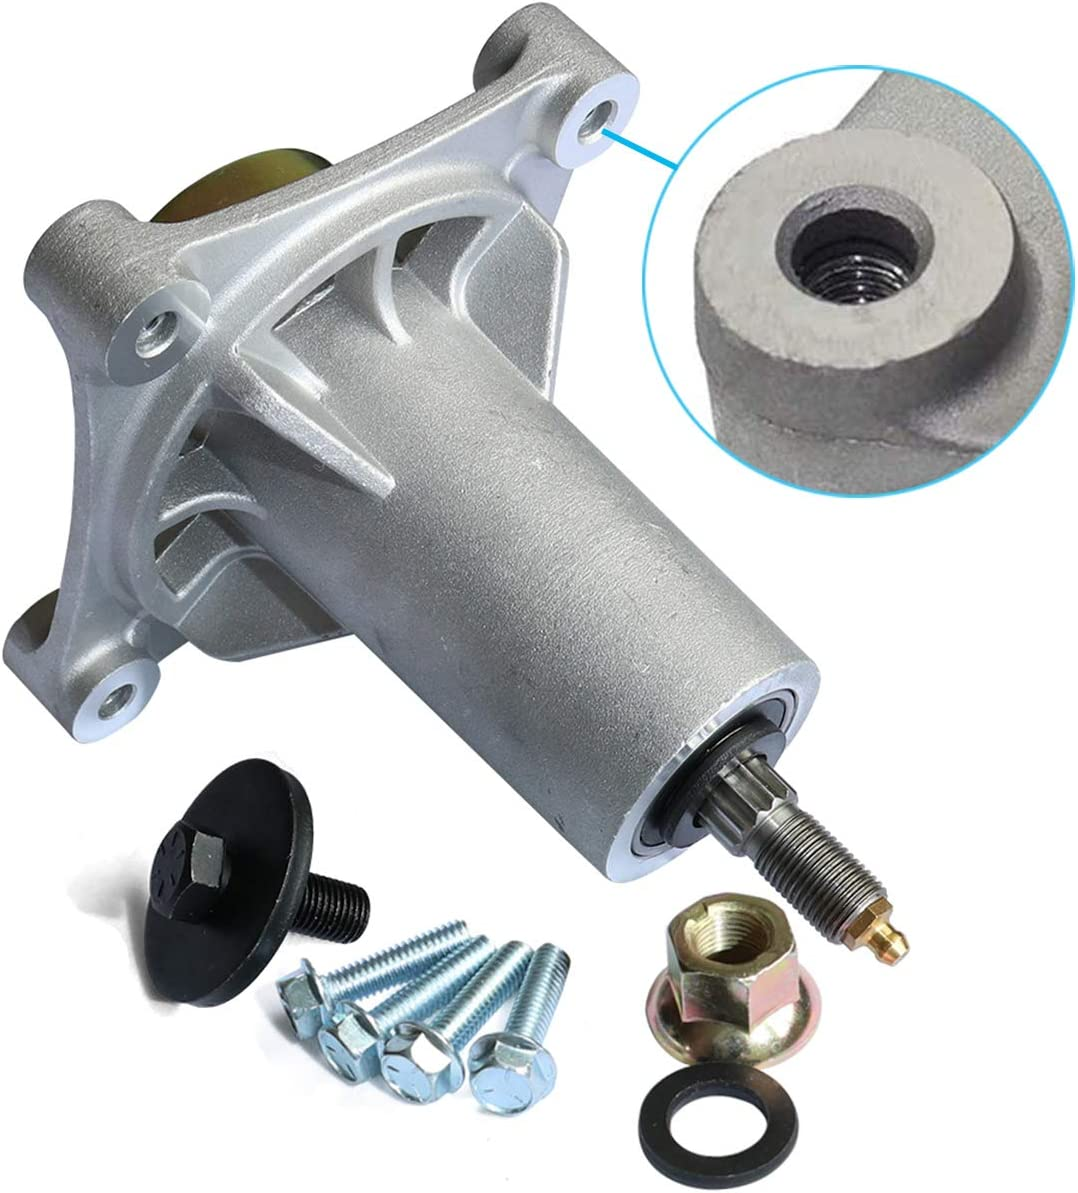 KOOTANS Mower Spindle Assembly for AYP 187292 192870, for Husqvarna 587820301 532192870 532187292 532187281 539112057 587125401 Ariens 21546238, for Stens 285-585 6500810, Rotary 11590